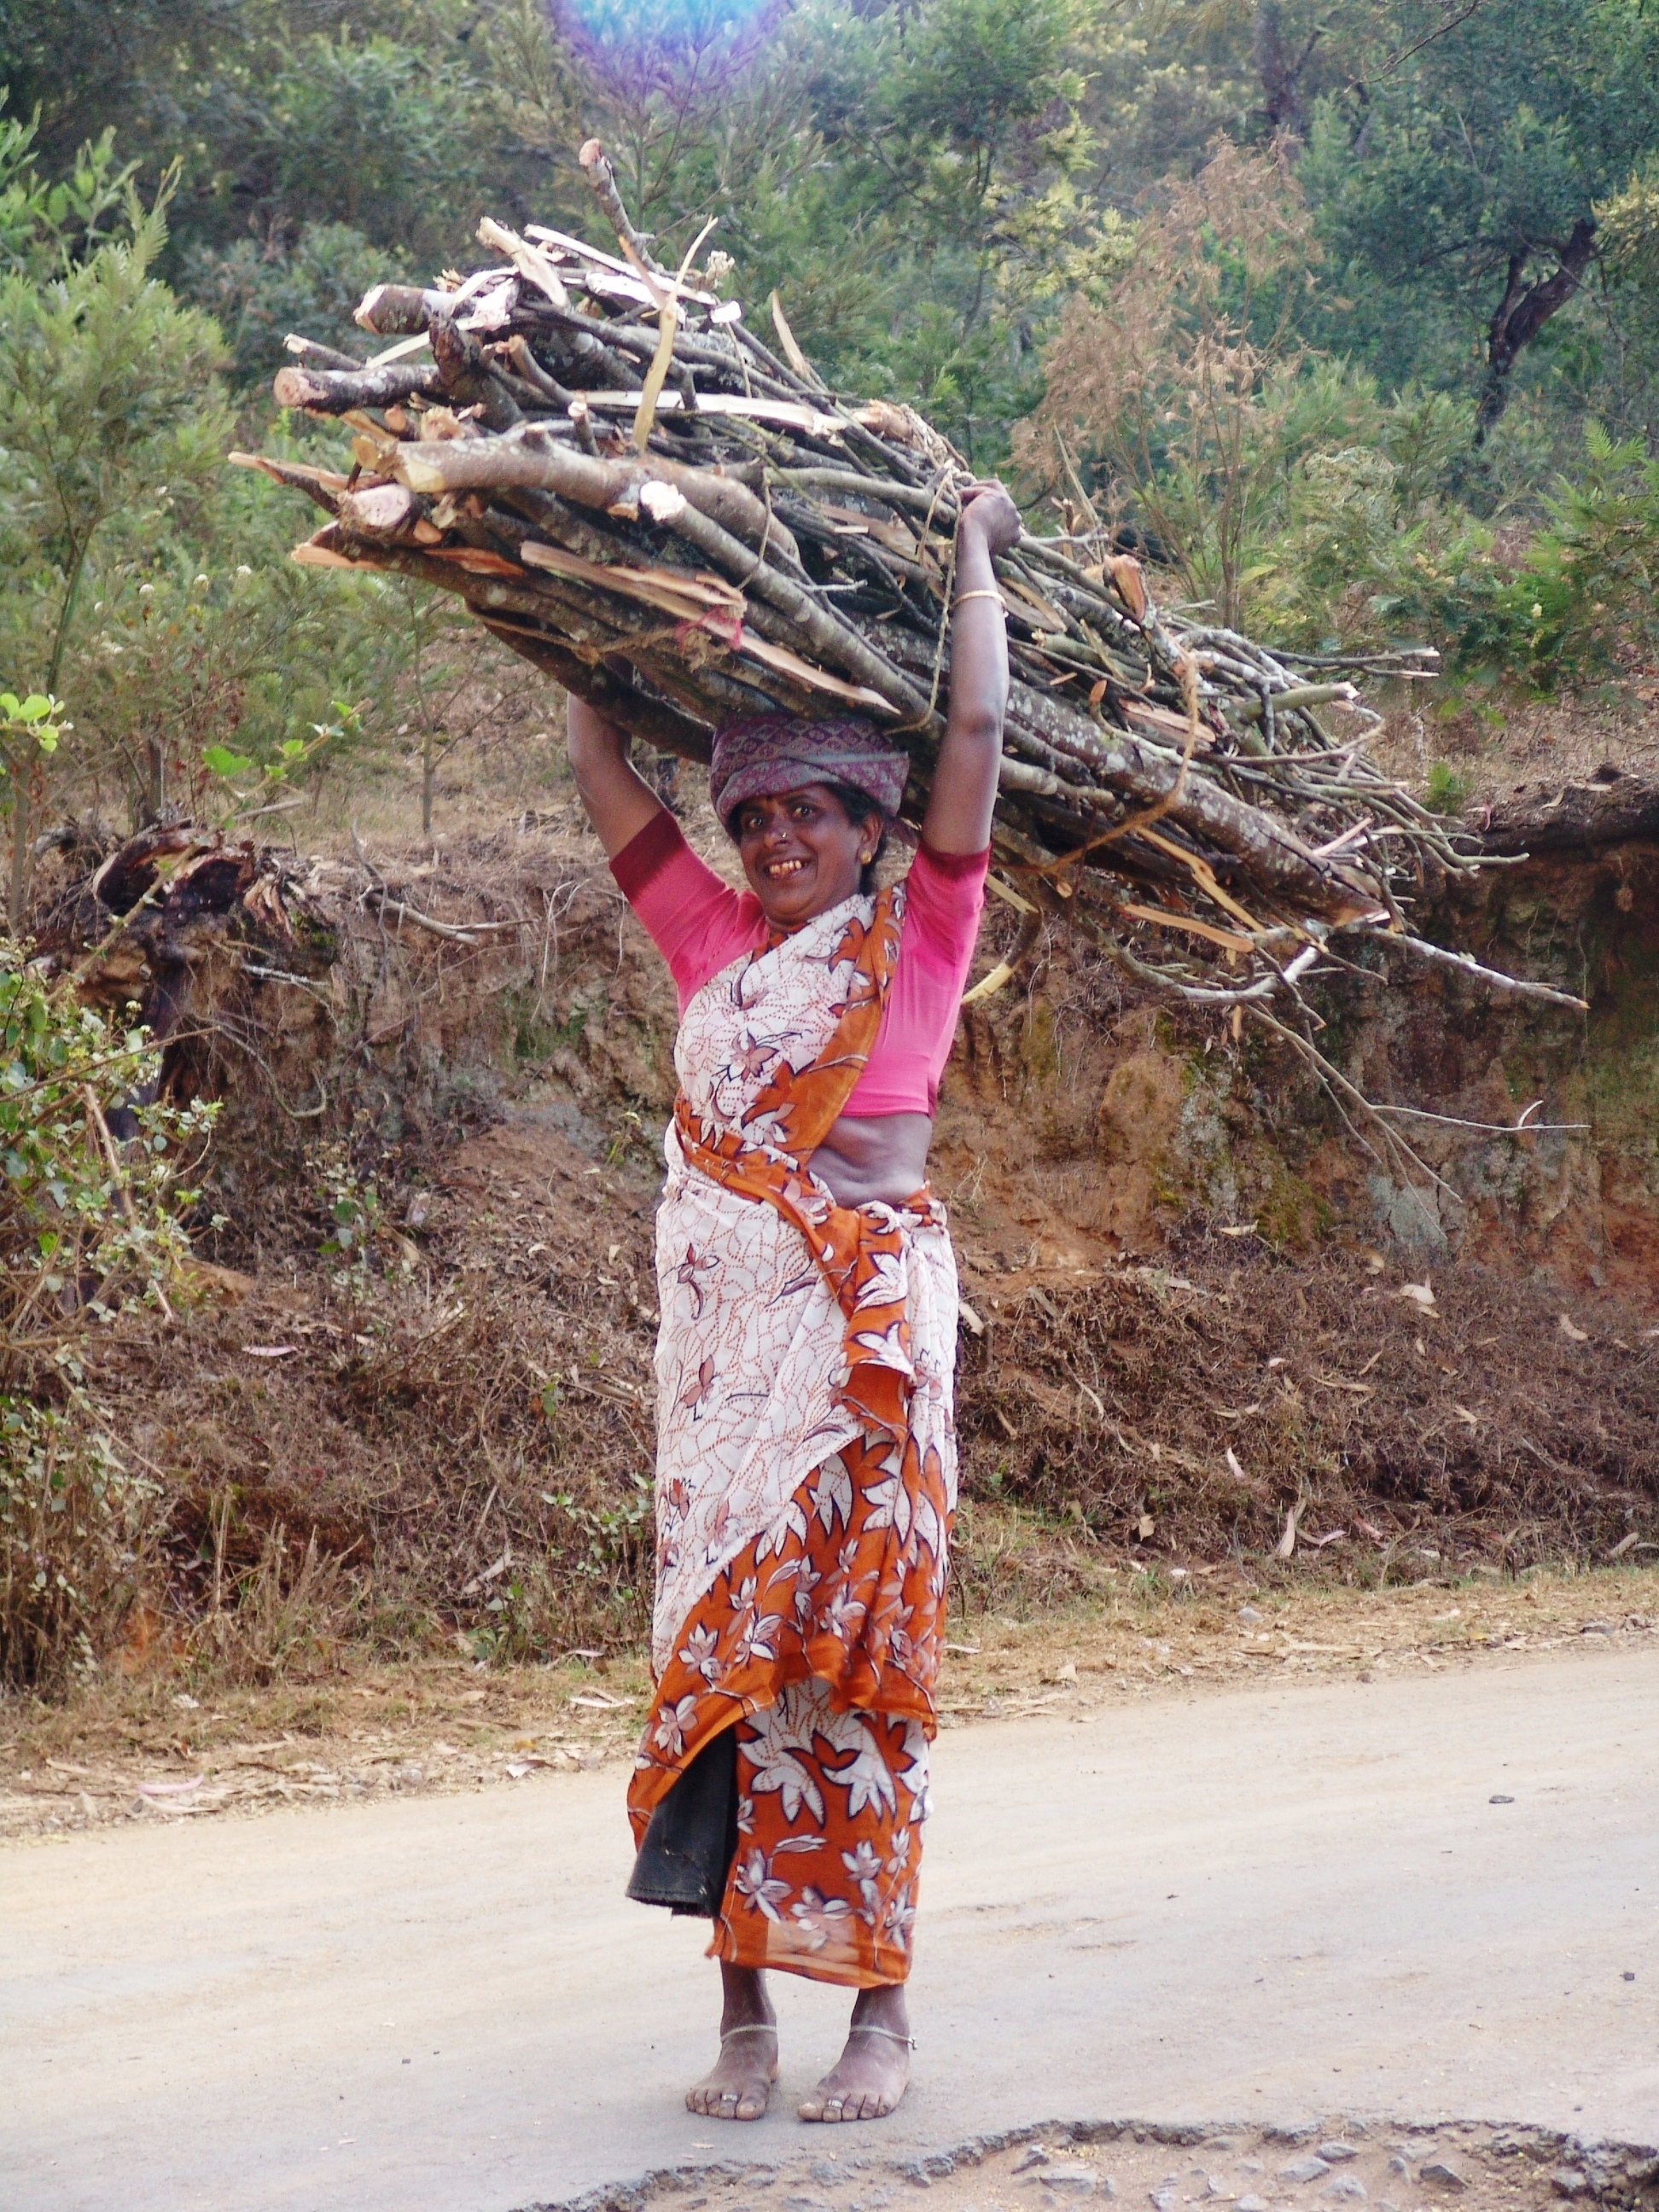 Parks under pressure... fuelwood harvesting in India (photo by William Laurance)